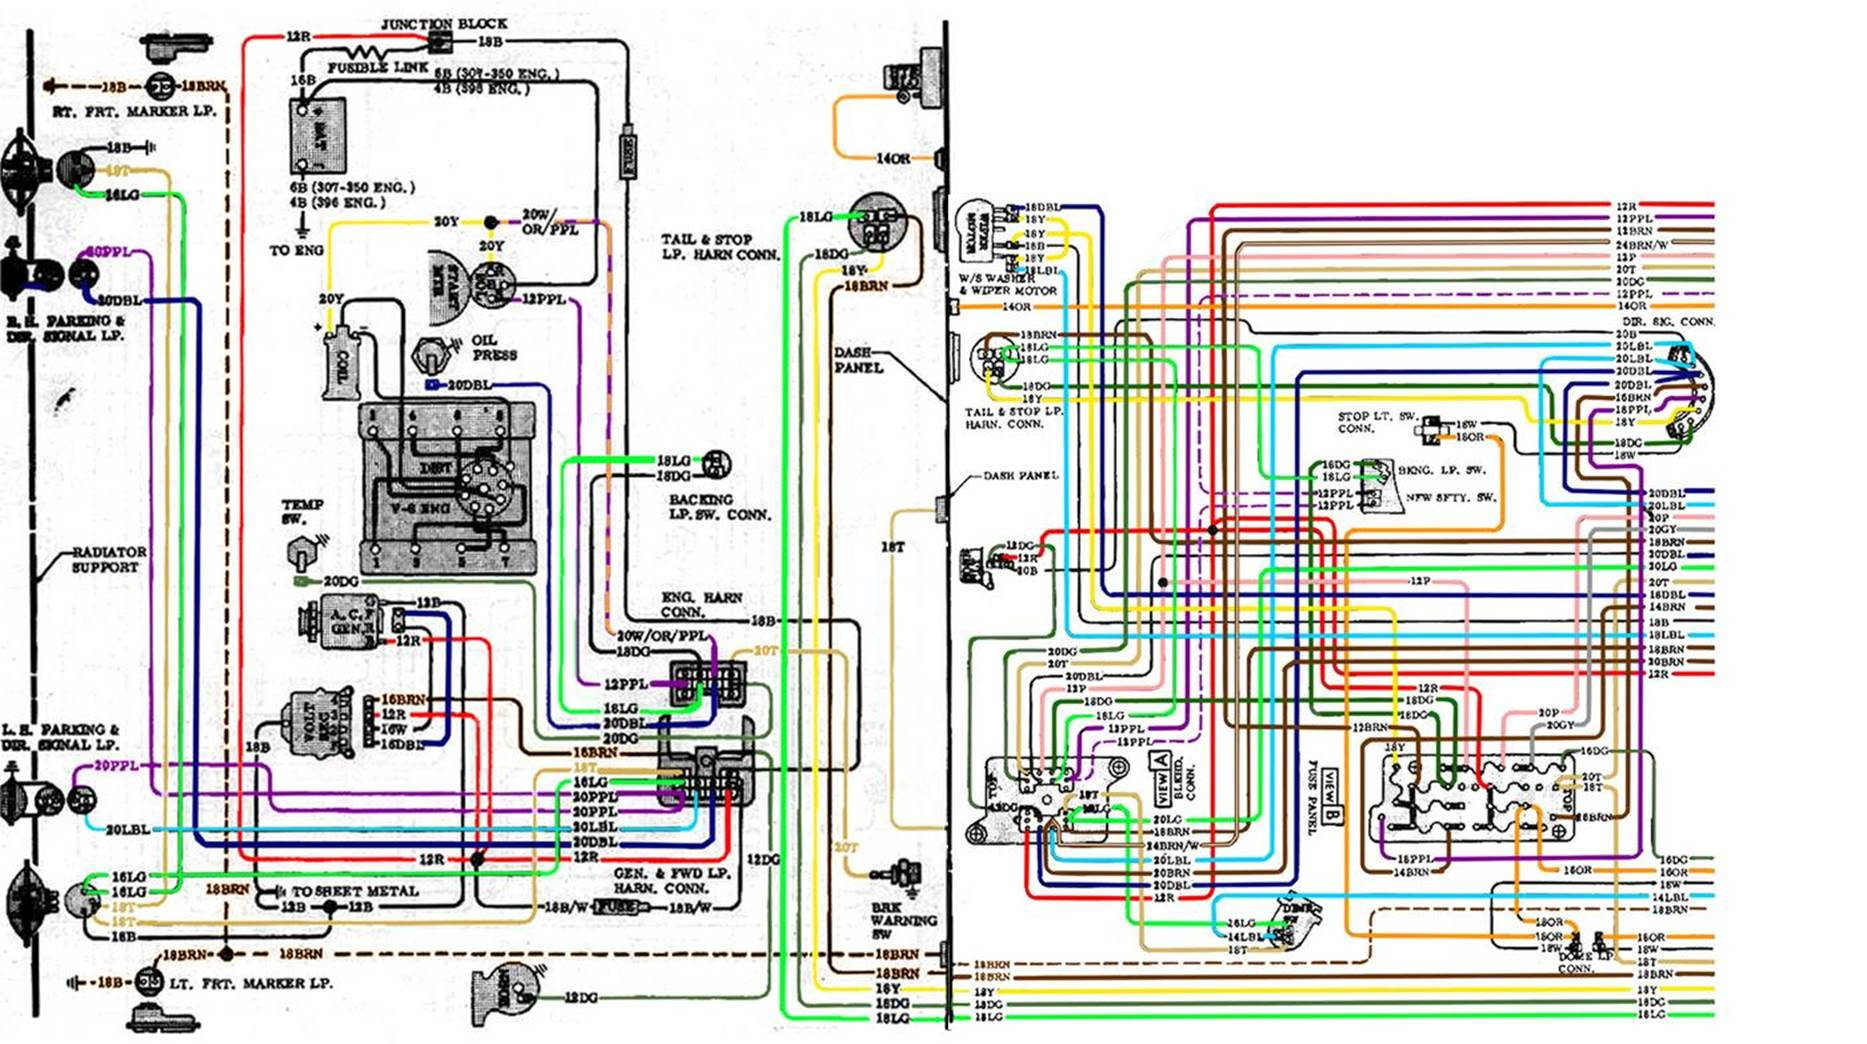 67 72 chevy wiring diagram rh outintheshop com 1972 camaro wiring diagram 72 camaro wiring diagram autozone